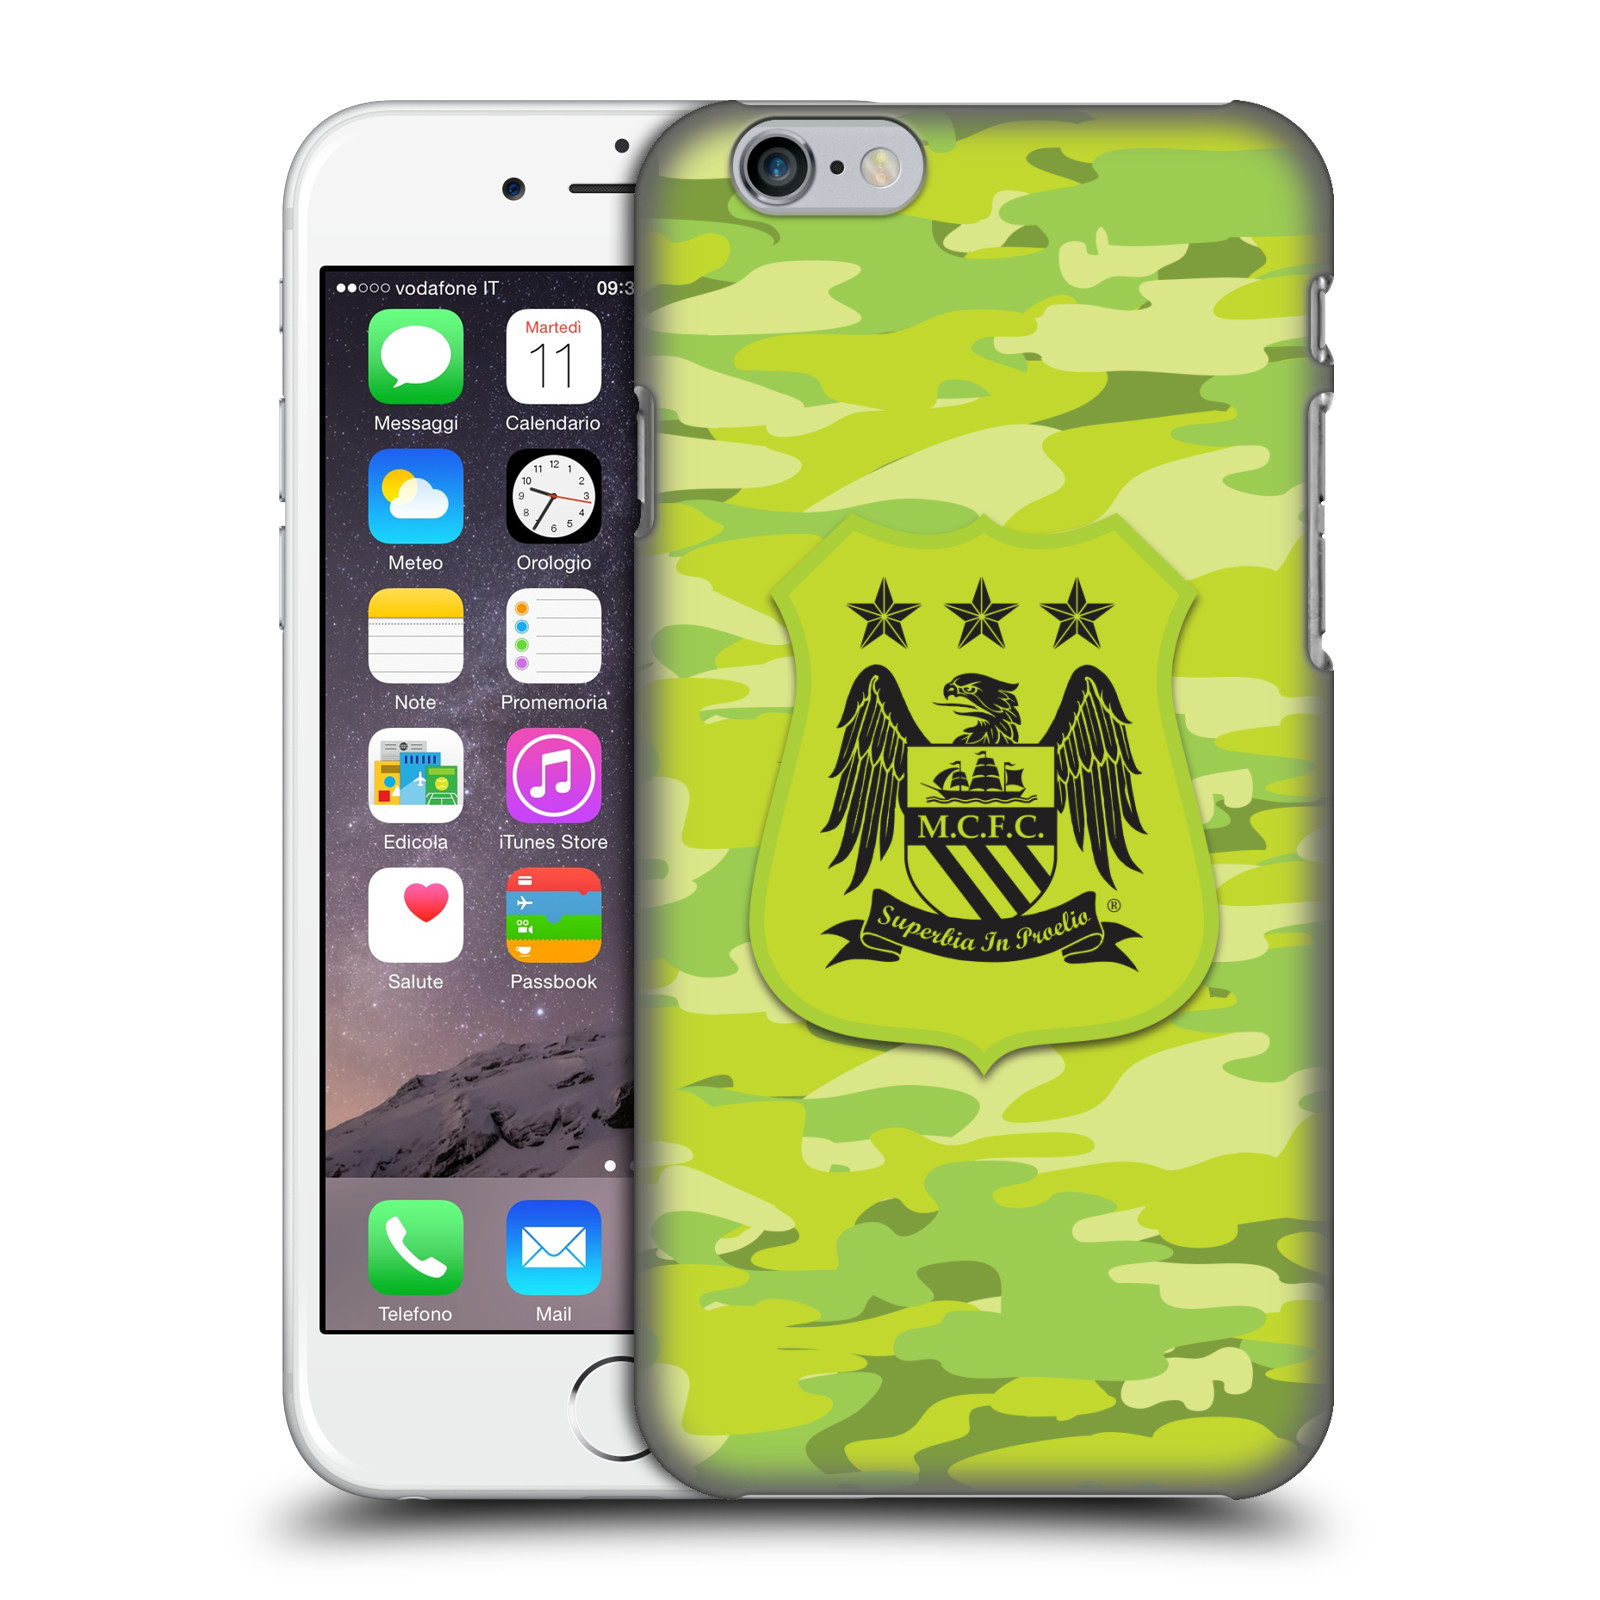 Manchester City FC MCFC Camou-Third Colourways One colour